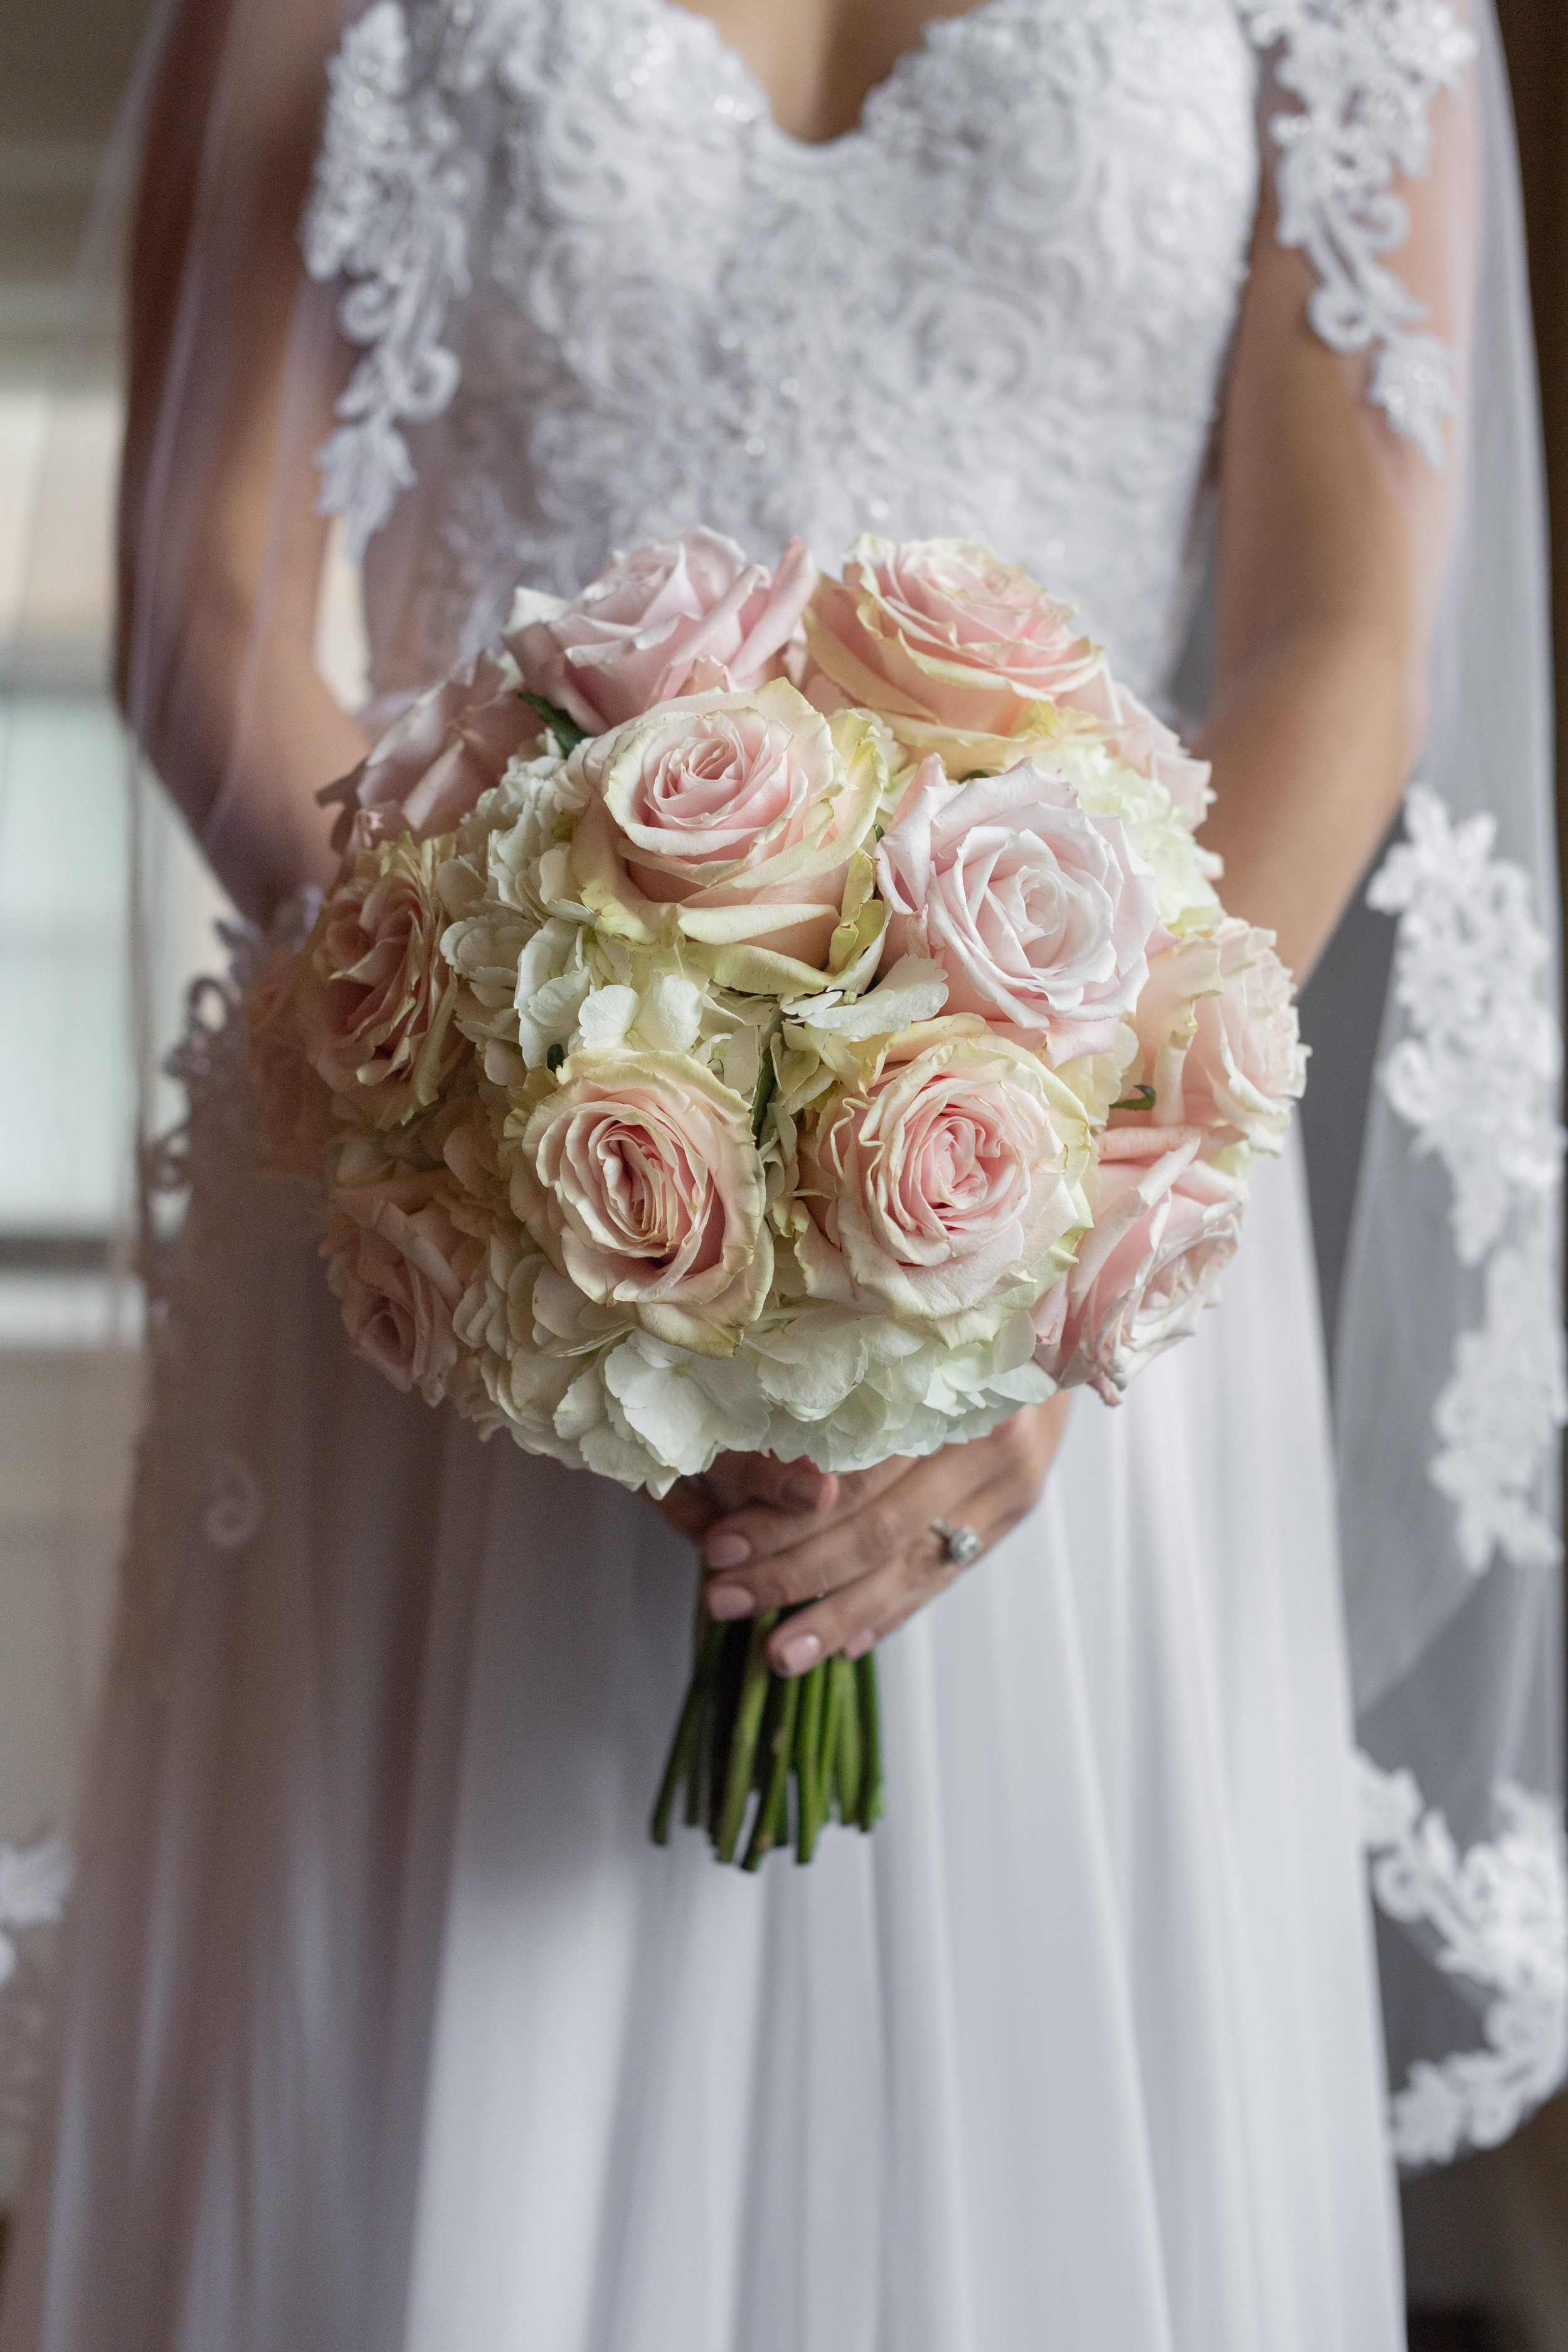 This elegant and romantic bridal bouquet is simple yet sweet. Pale Pink Roses and White Hydrangea balance a subtle color palette with a soft pink glow.  (Ned Jackson Photography)